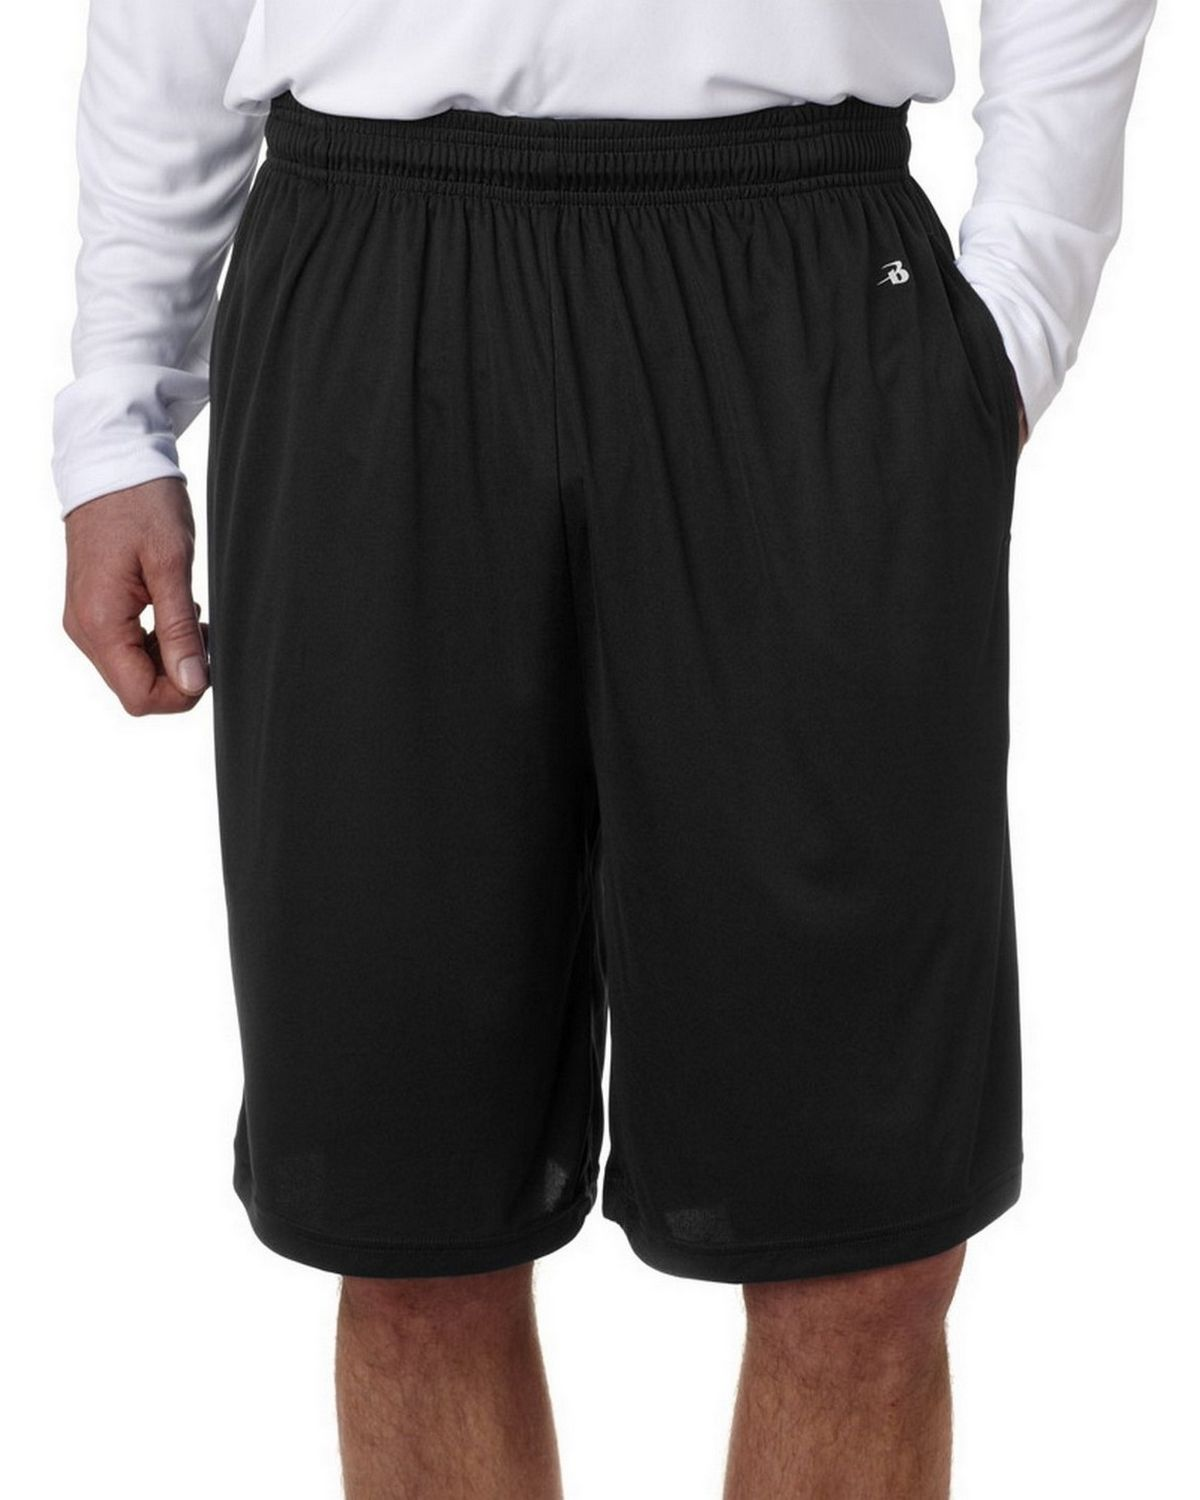 Badger 4119 BD Performance Shorts Pkt - Black - XL 4119